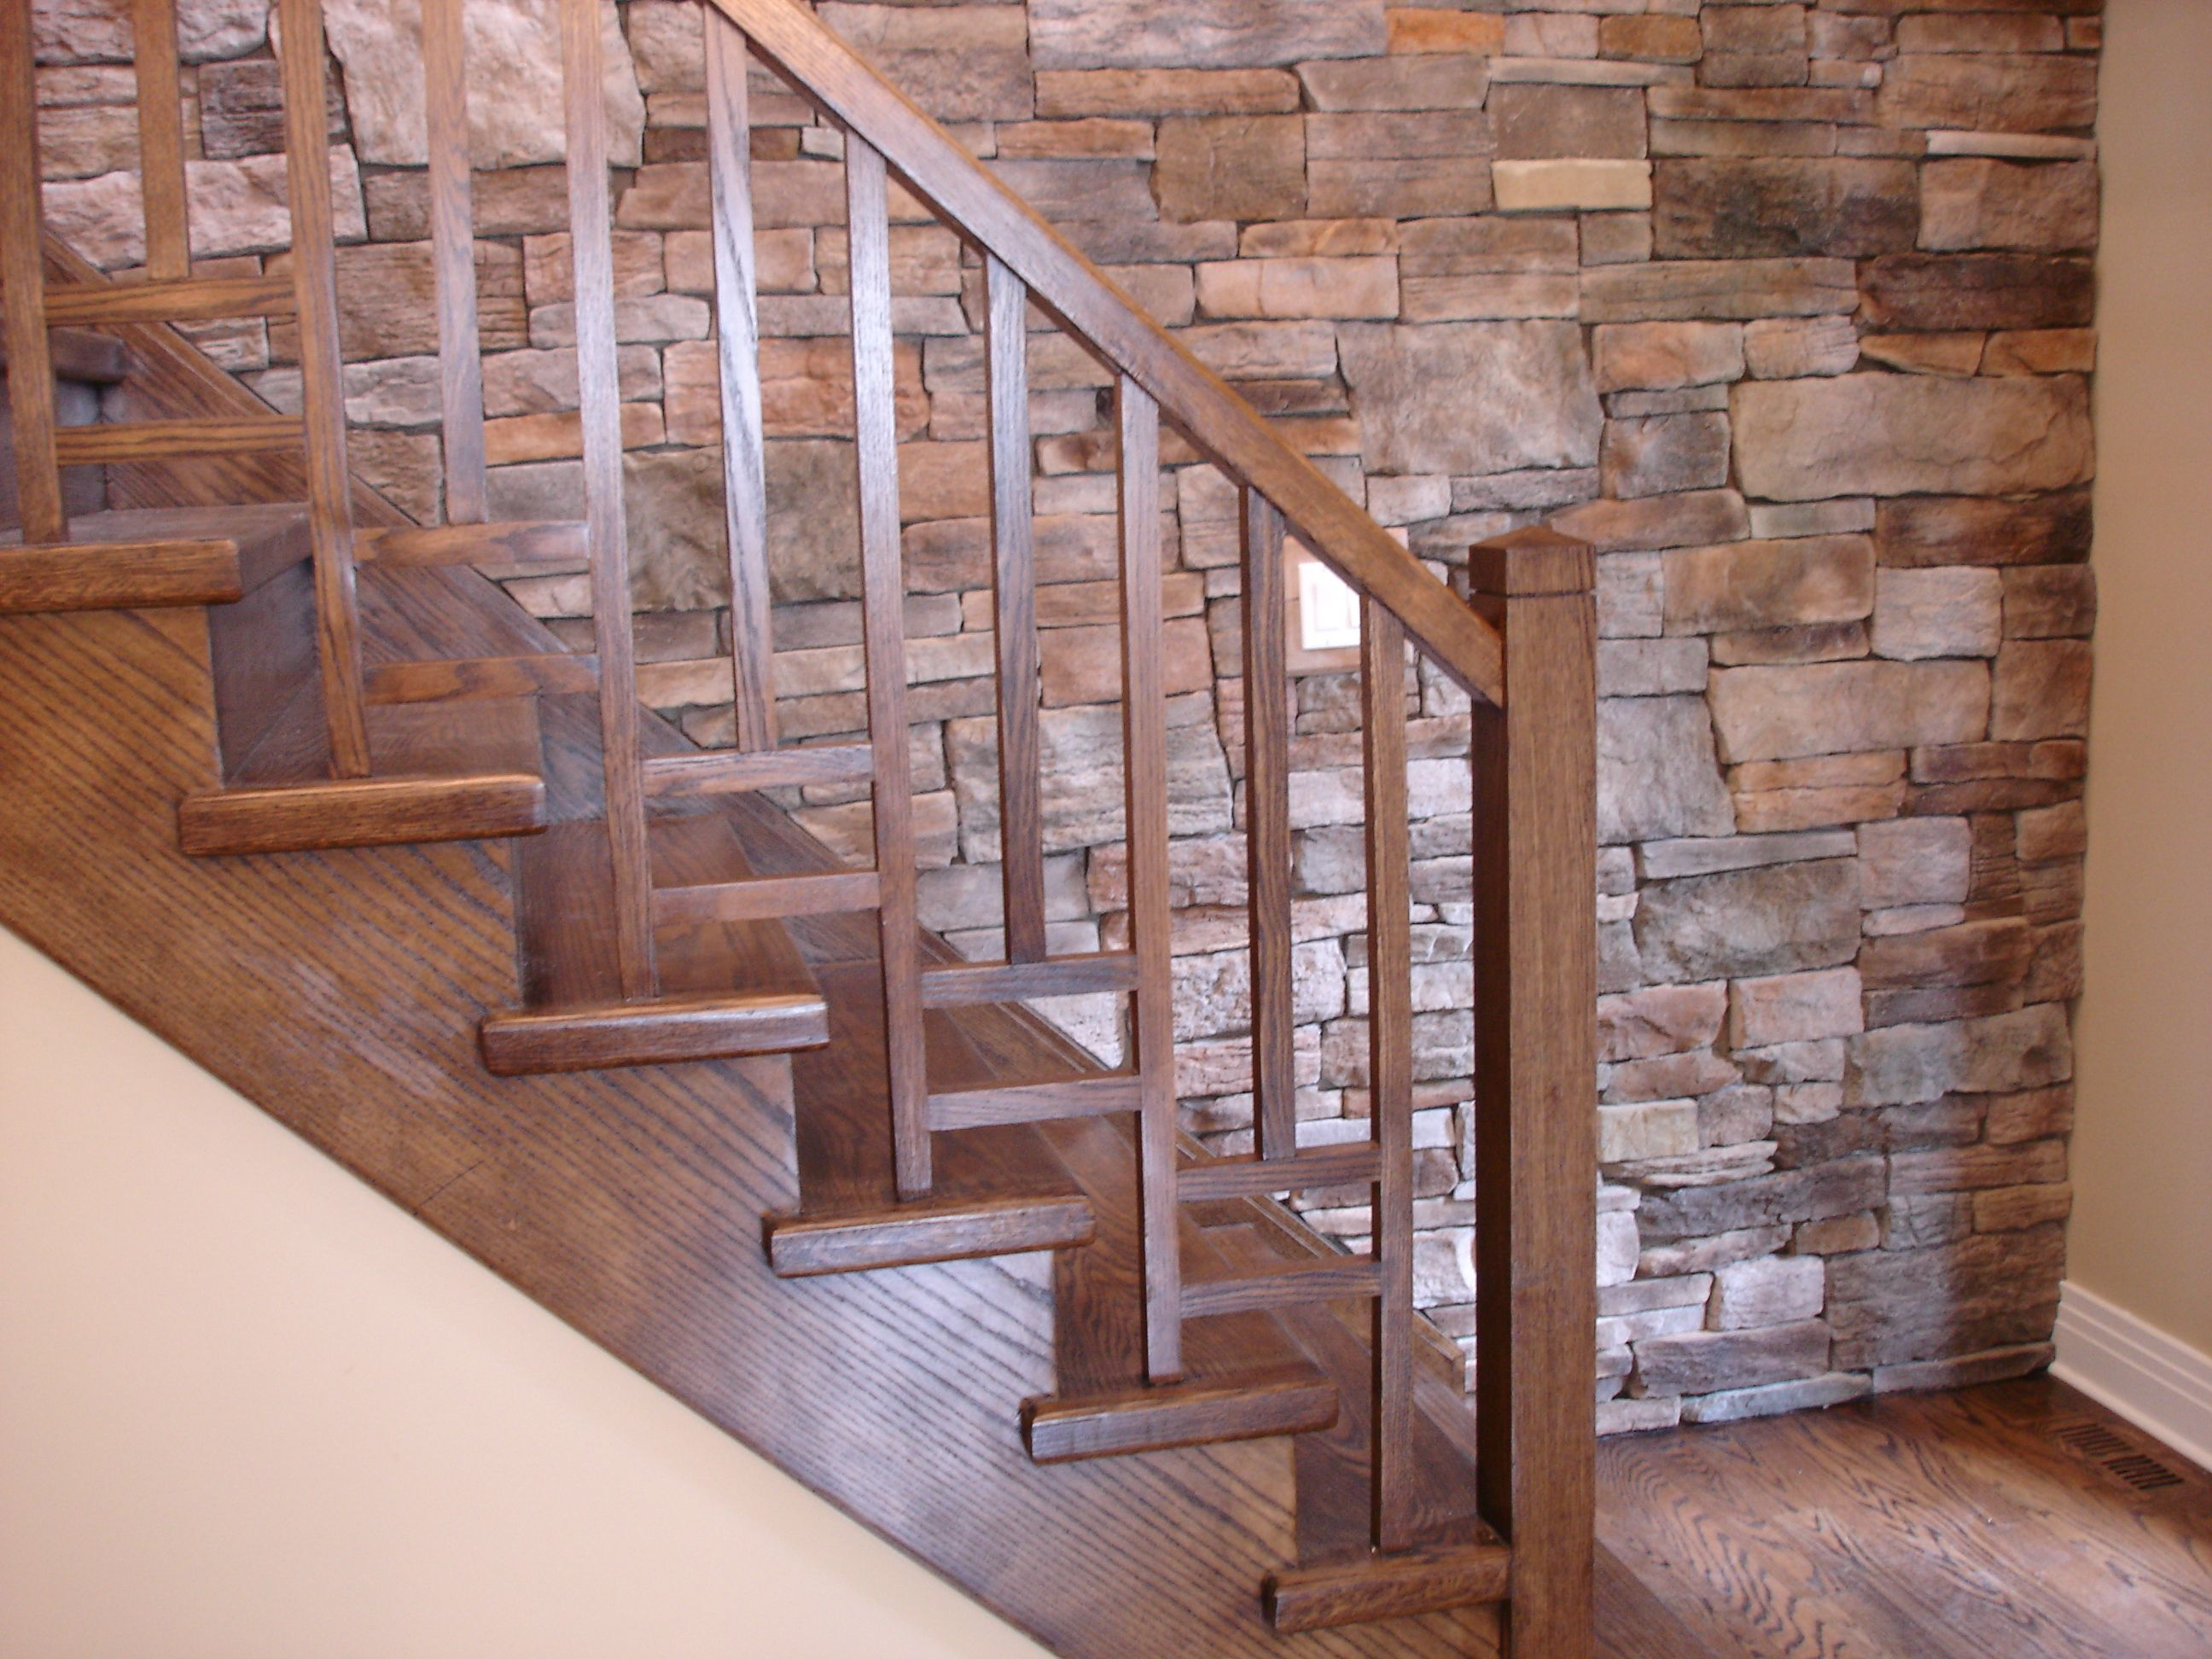 Stair Spindles And Balusters From Stairplan Staircase Spindles Stair Spindles Spindle Design